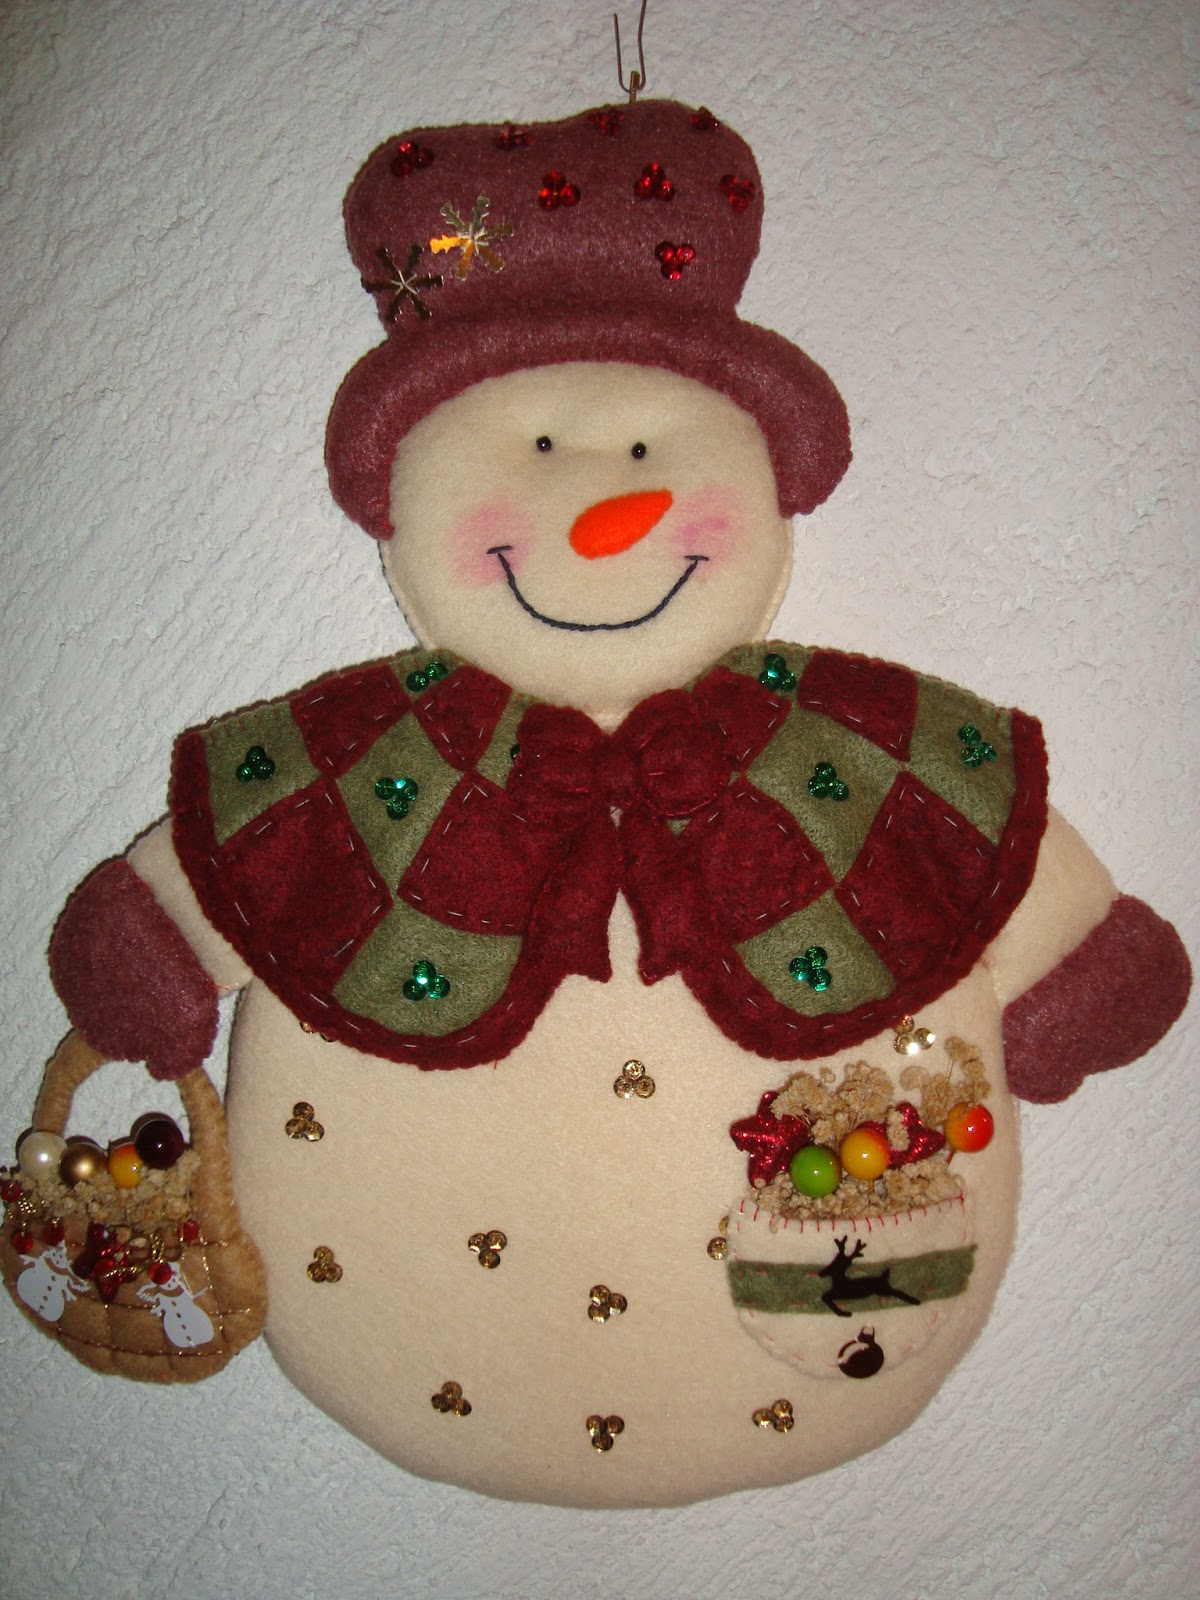 Sra mu eco de nieve manualidades navide as paty for Ver manualidades navidenas